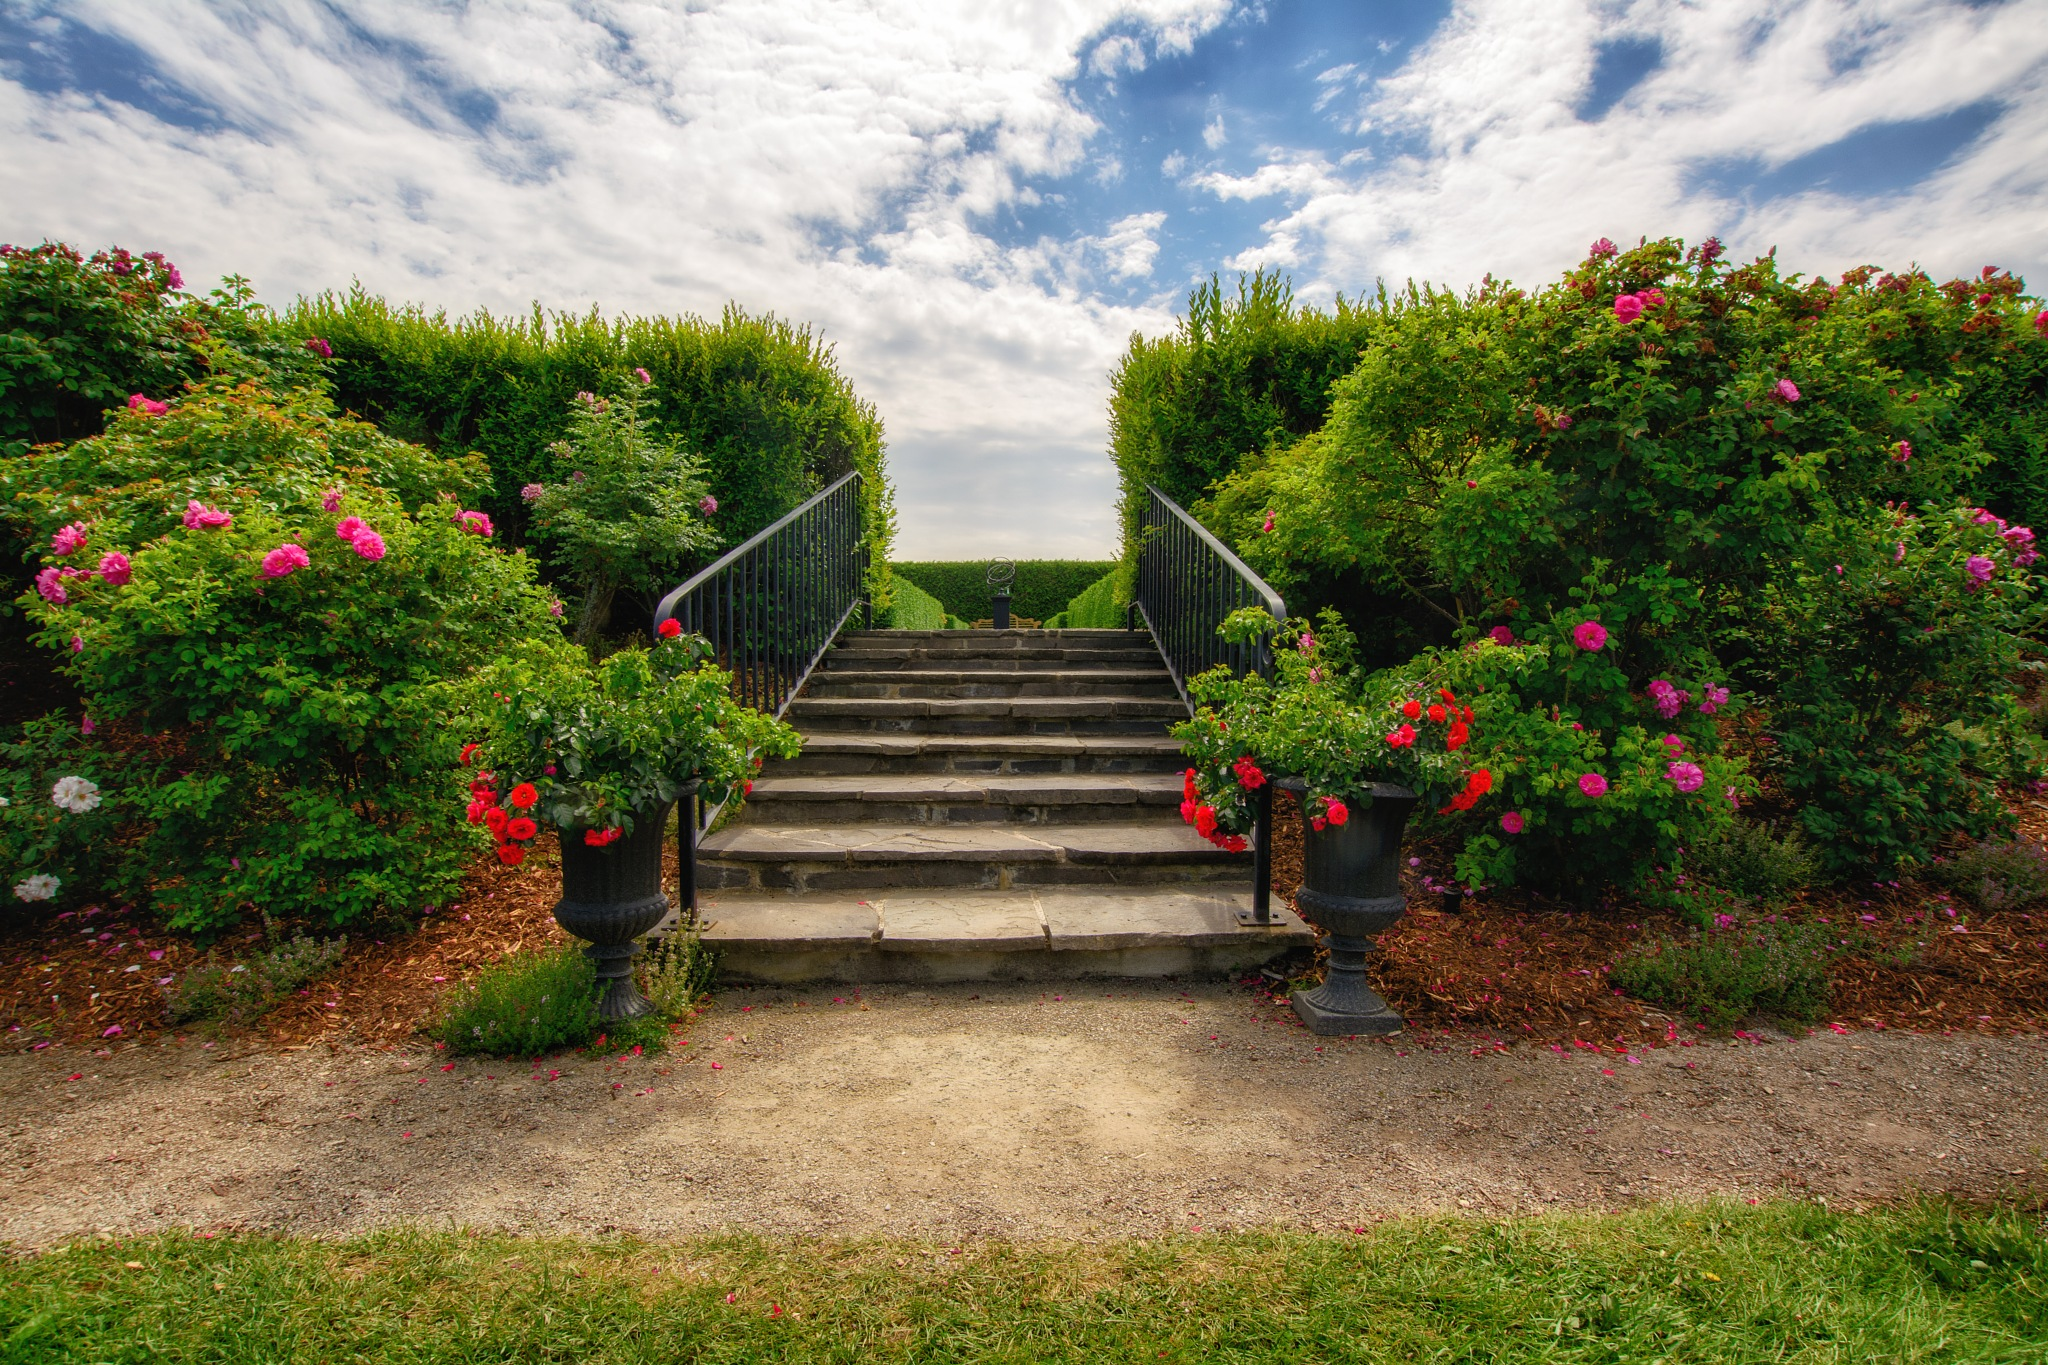 To the Steps by Jesse Kalberlah